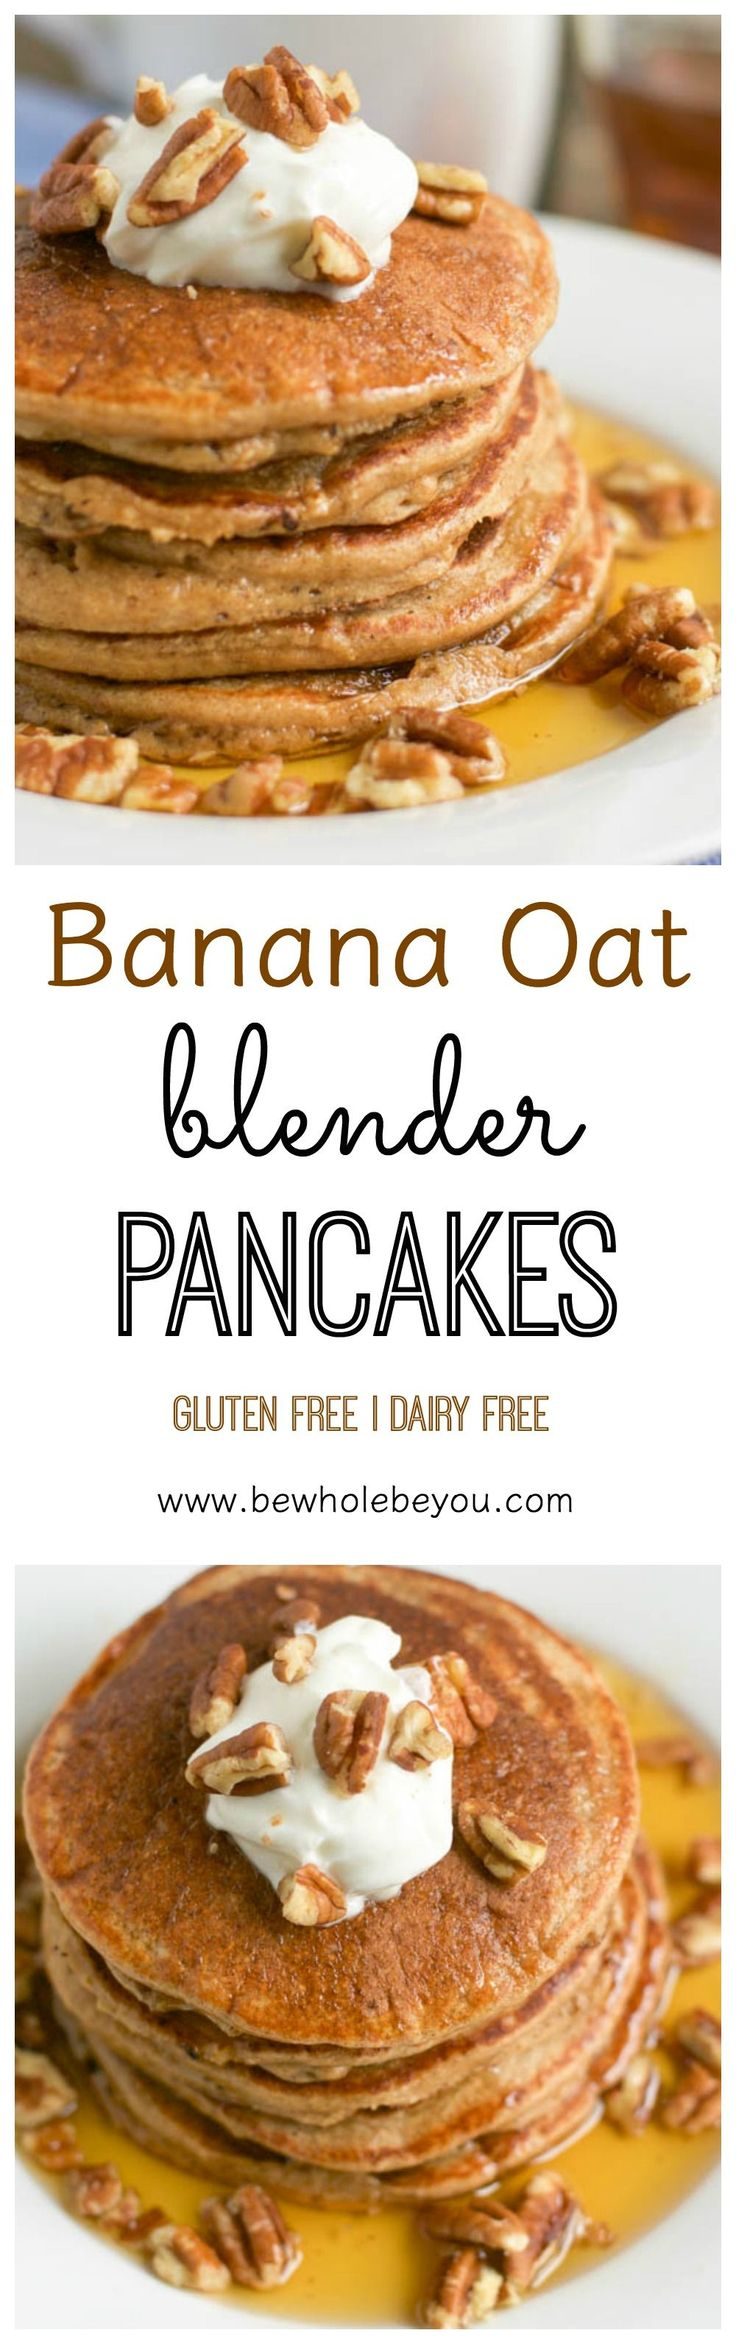 Banana Oat Blender Pancakes. Be Whole. Be You.